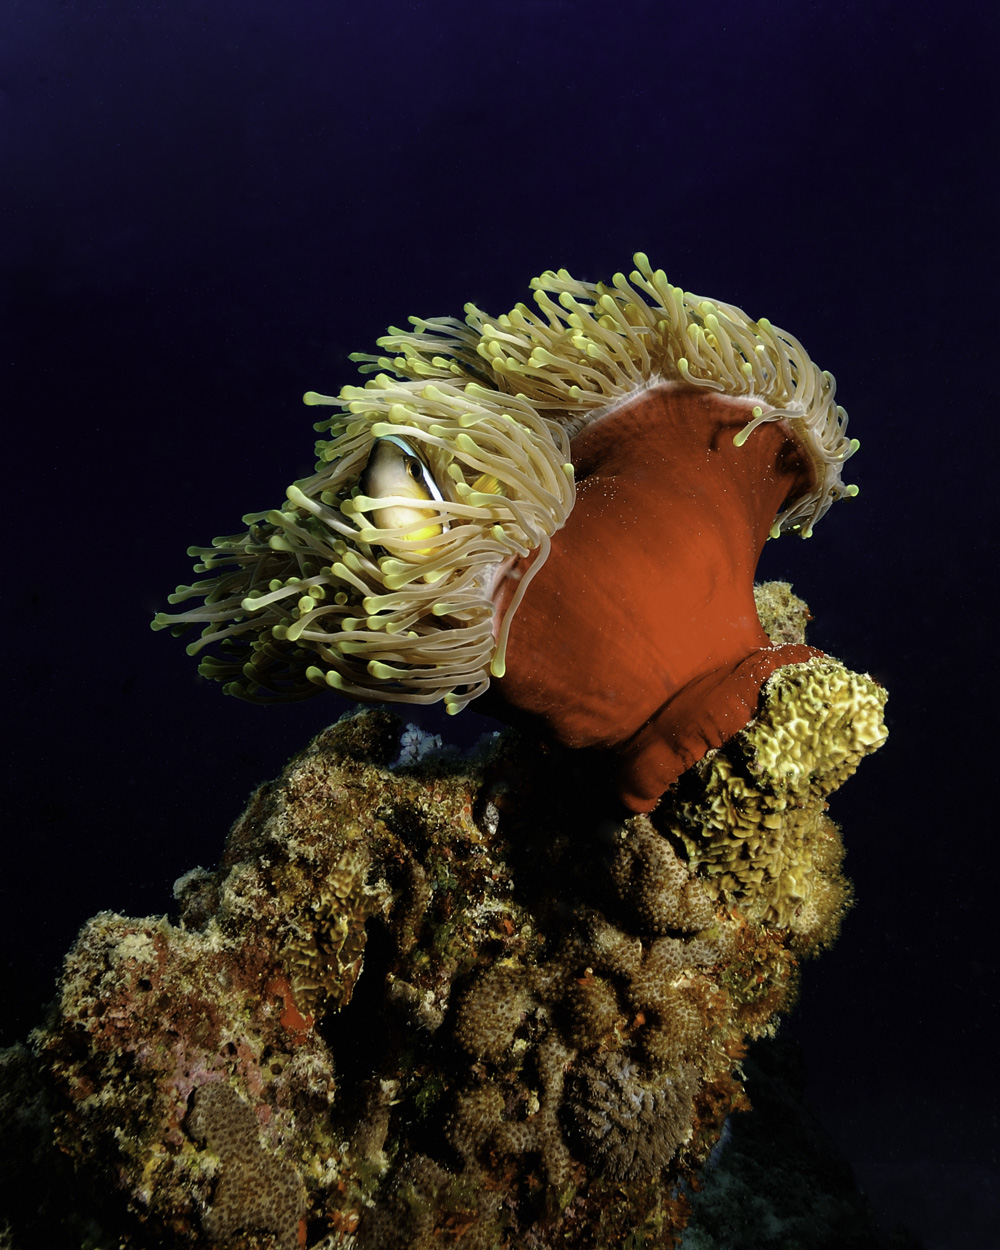 clown fish, Amhiprion chrysogaster